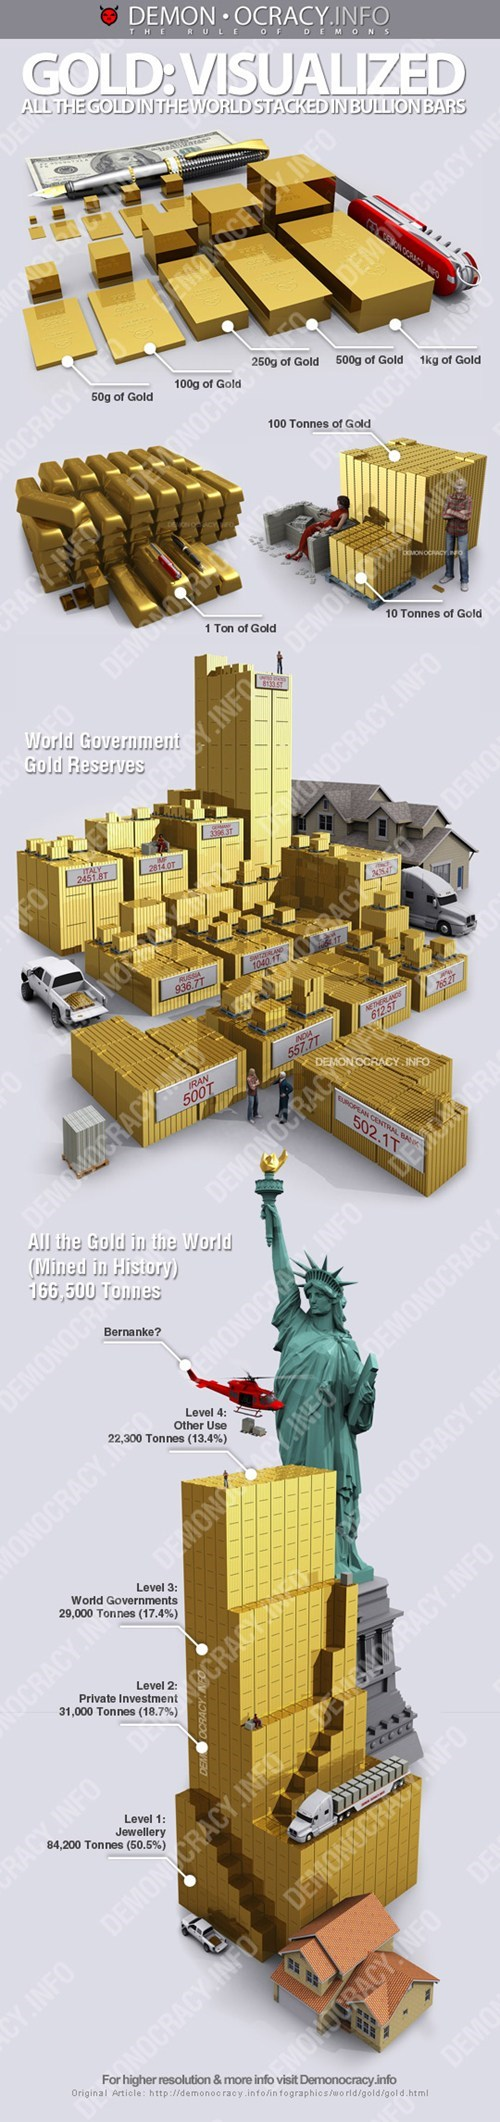 world gold wealth infographic money - 7018611456